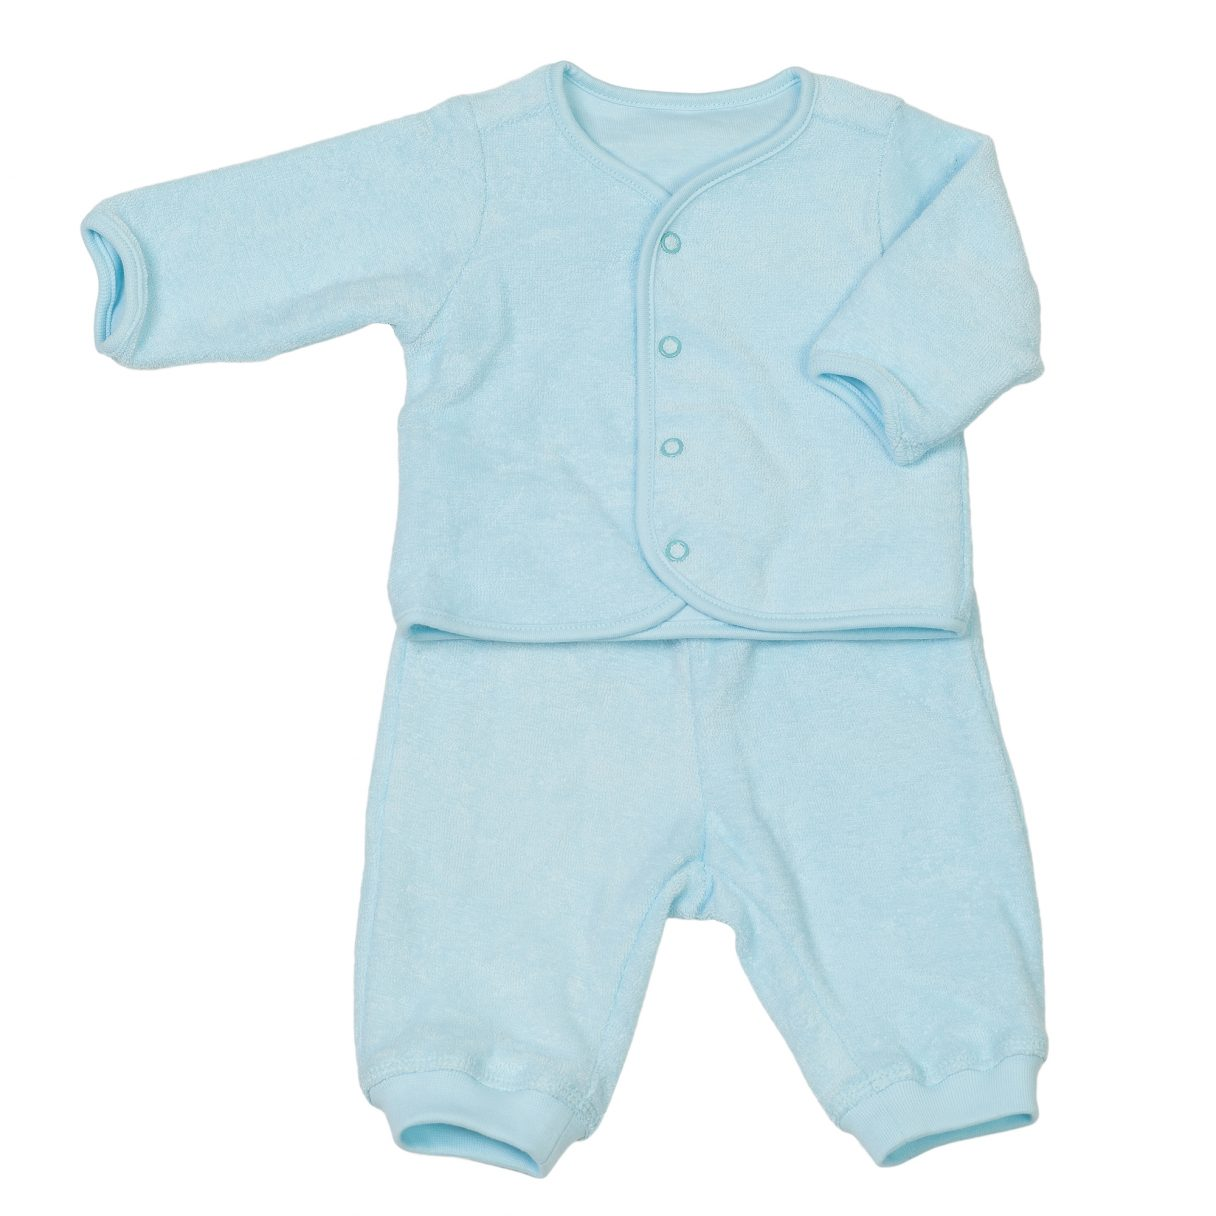 Baby Organic Cotton Sweatsuit Turquoise